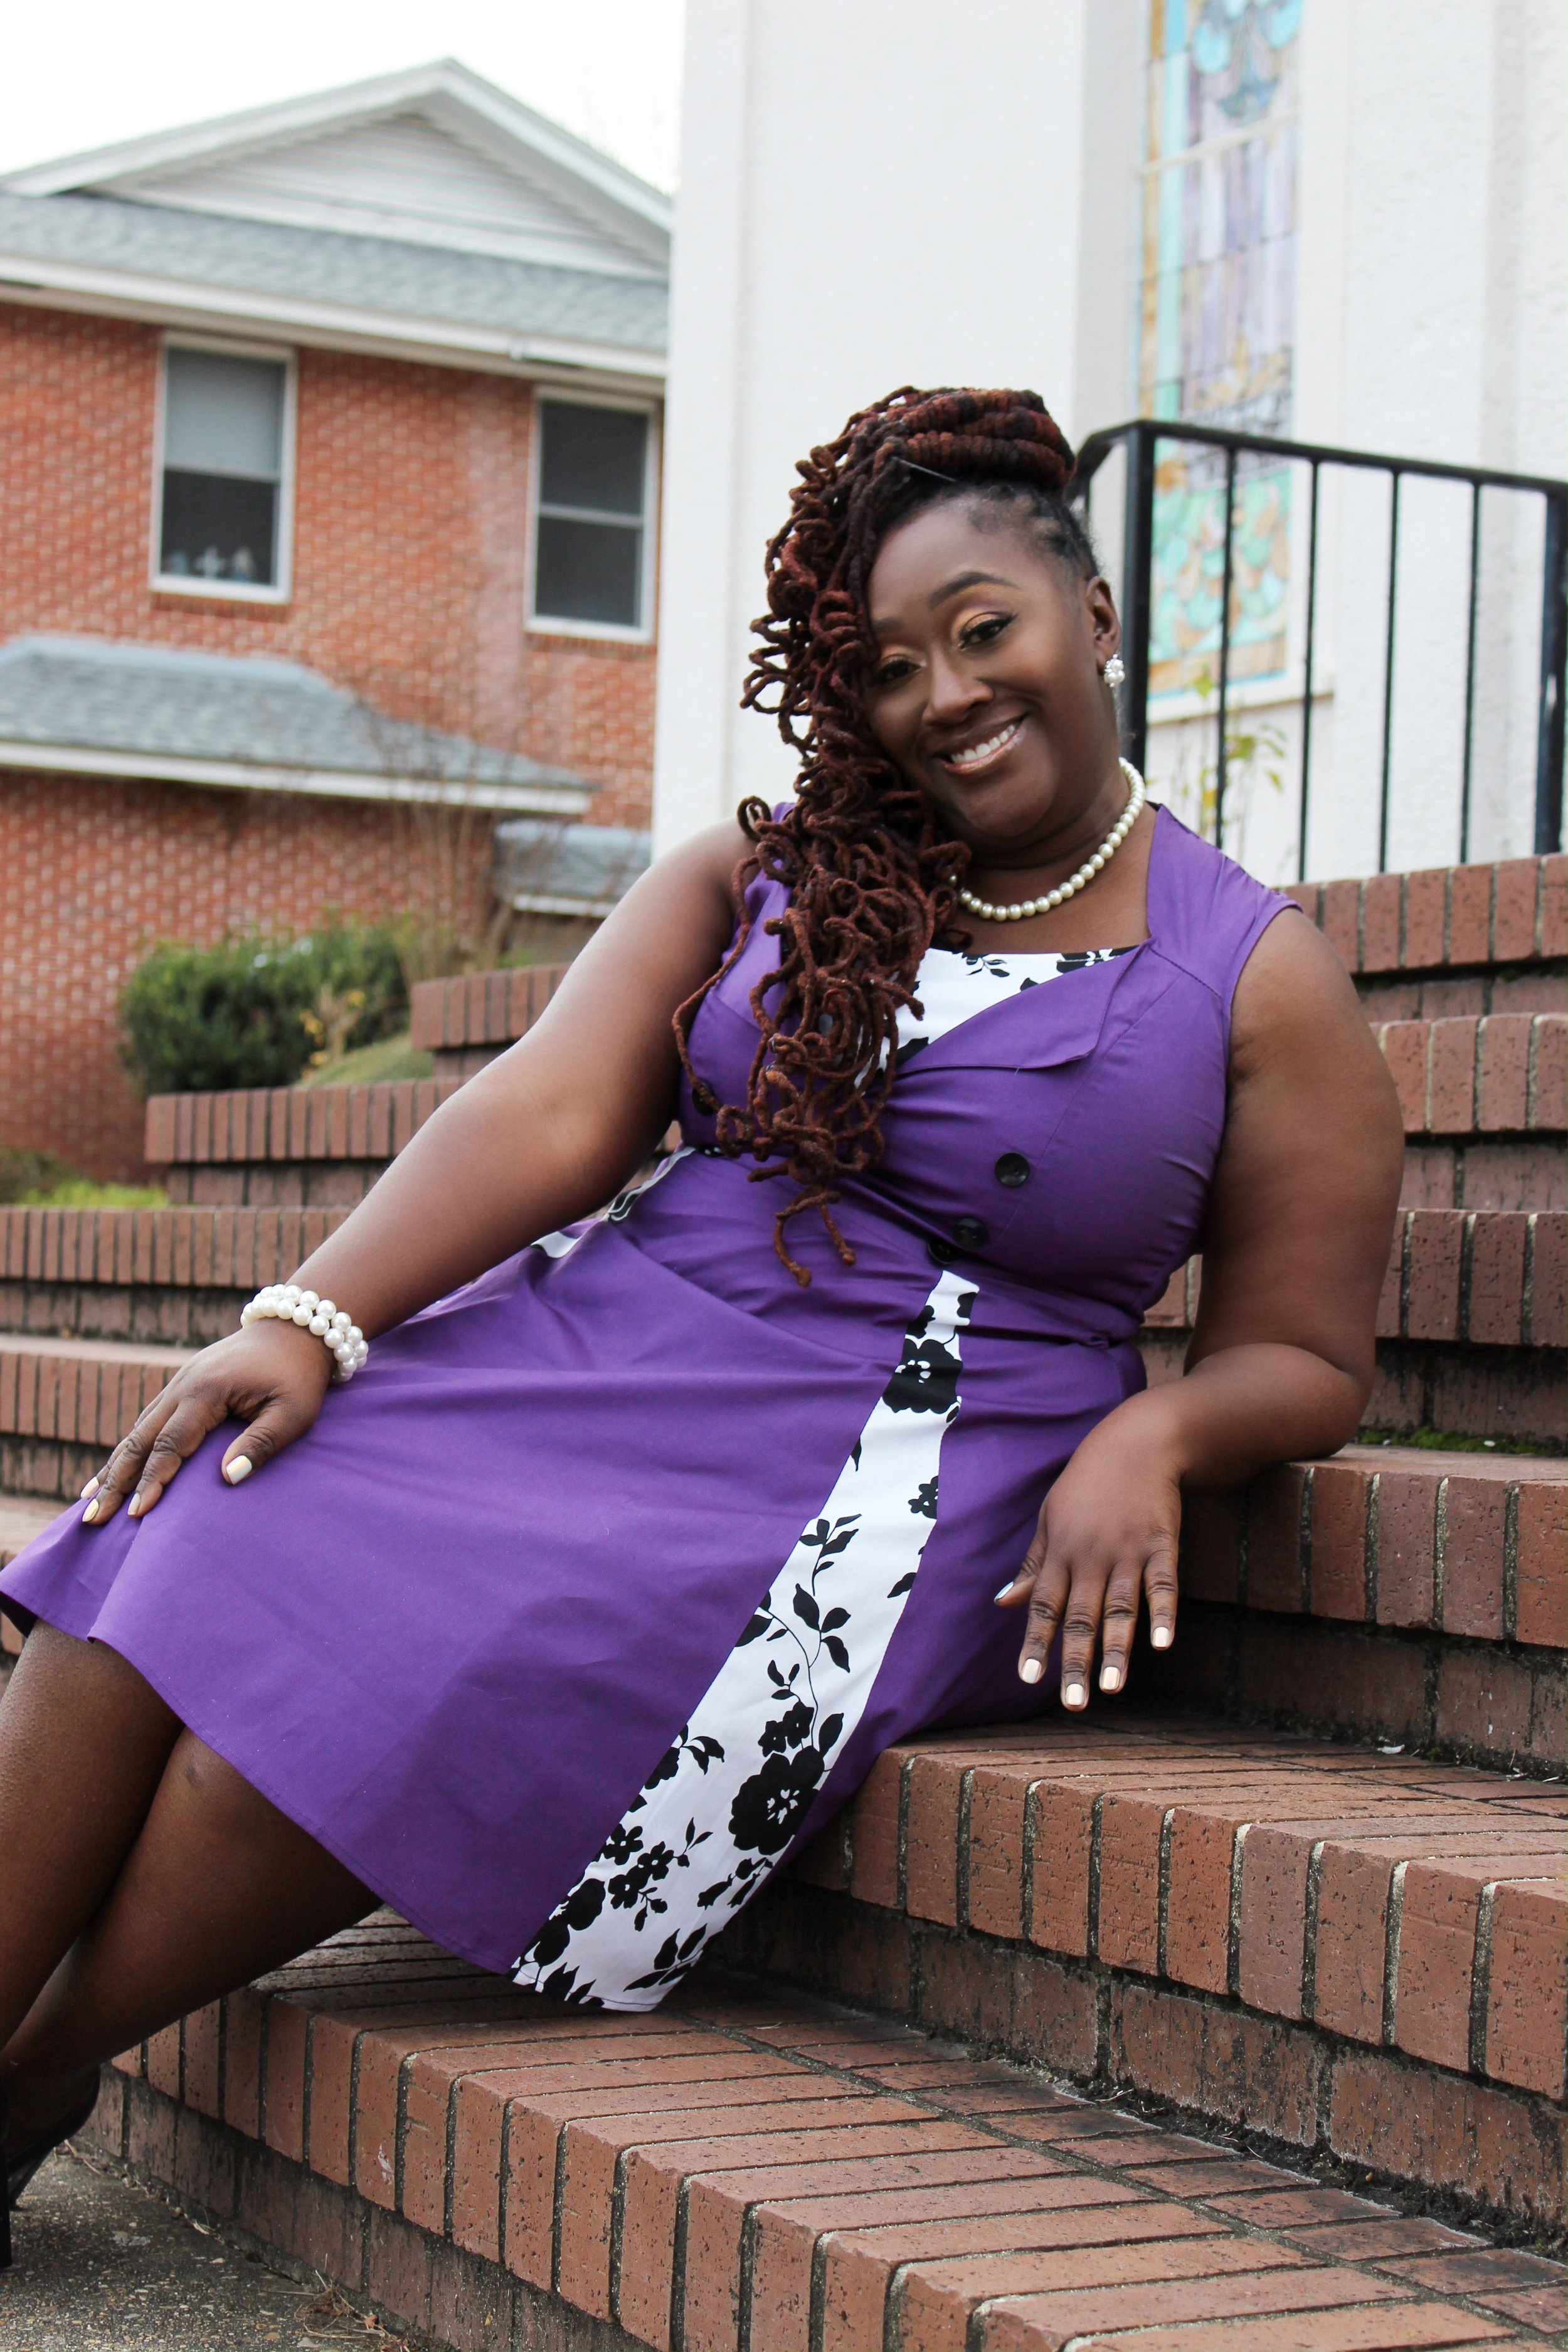 Veronica Pryor-Faciane, CEO/Founder of New ID Life Coaching LLC